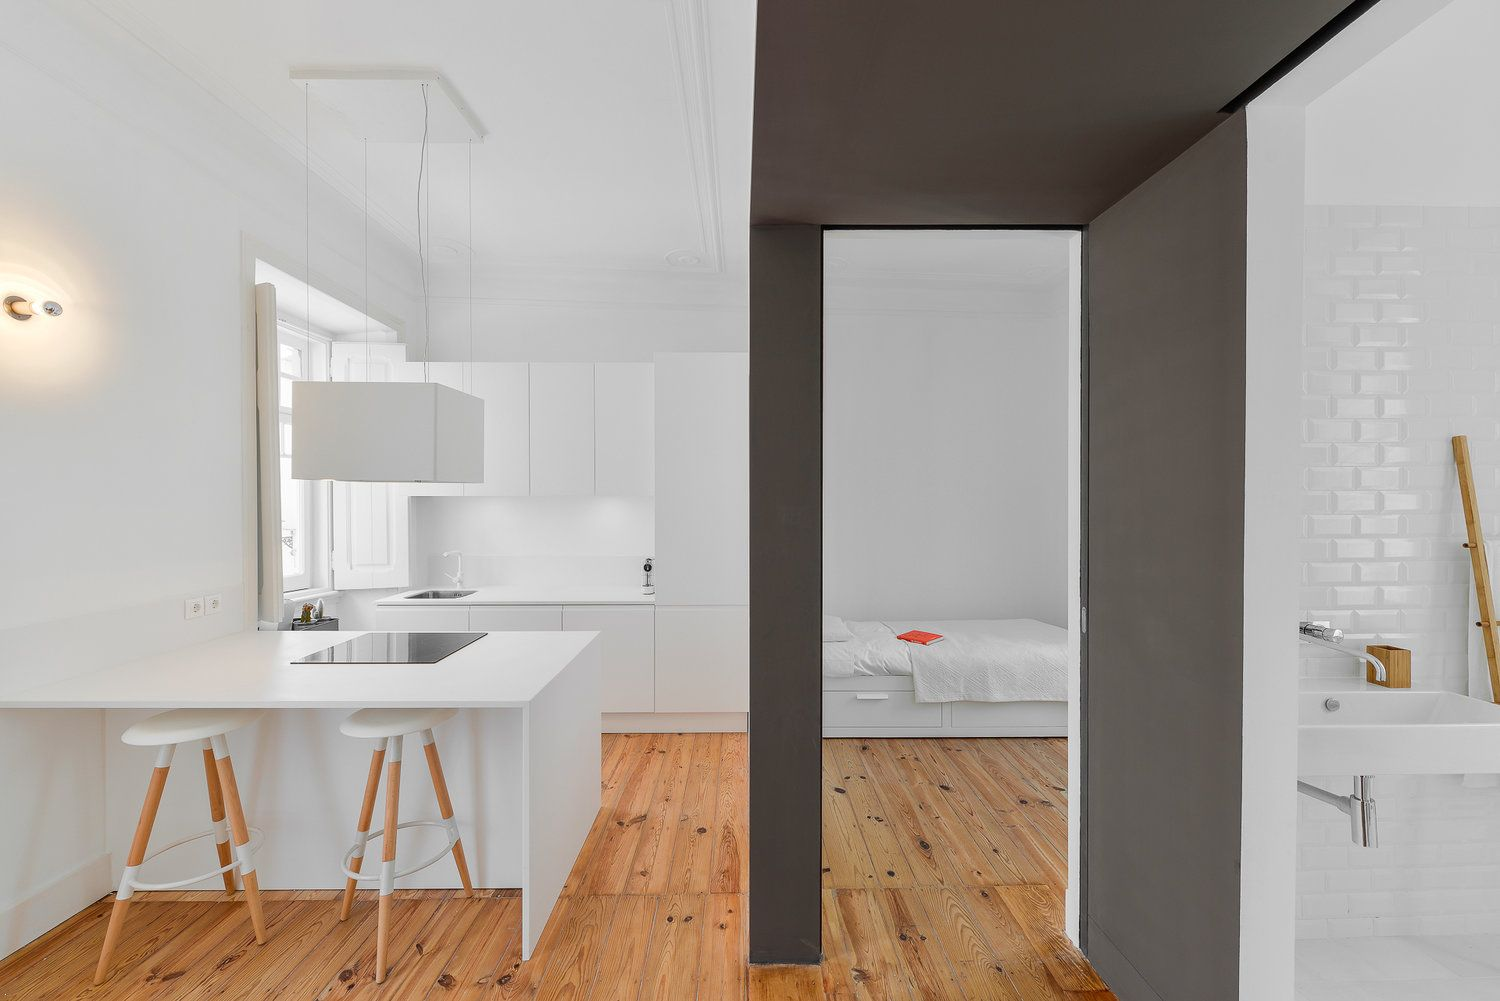 10*10 bedroom interior casamouraria  architectural recovery ideas  pinterest  flats